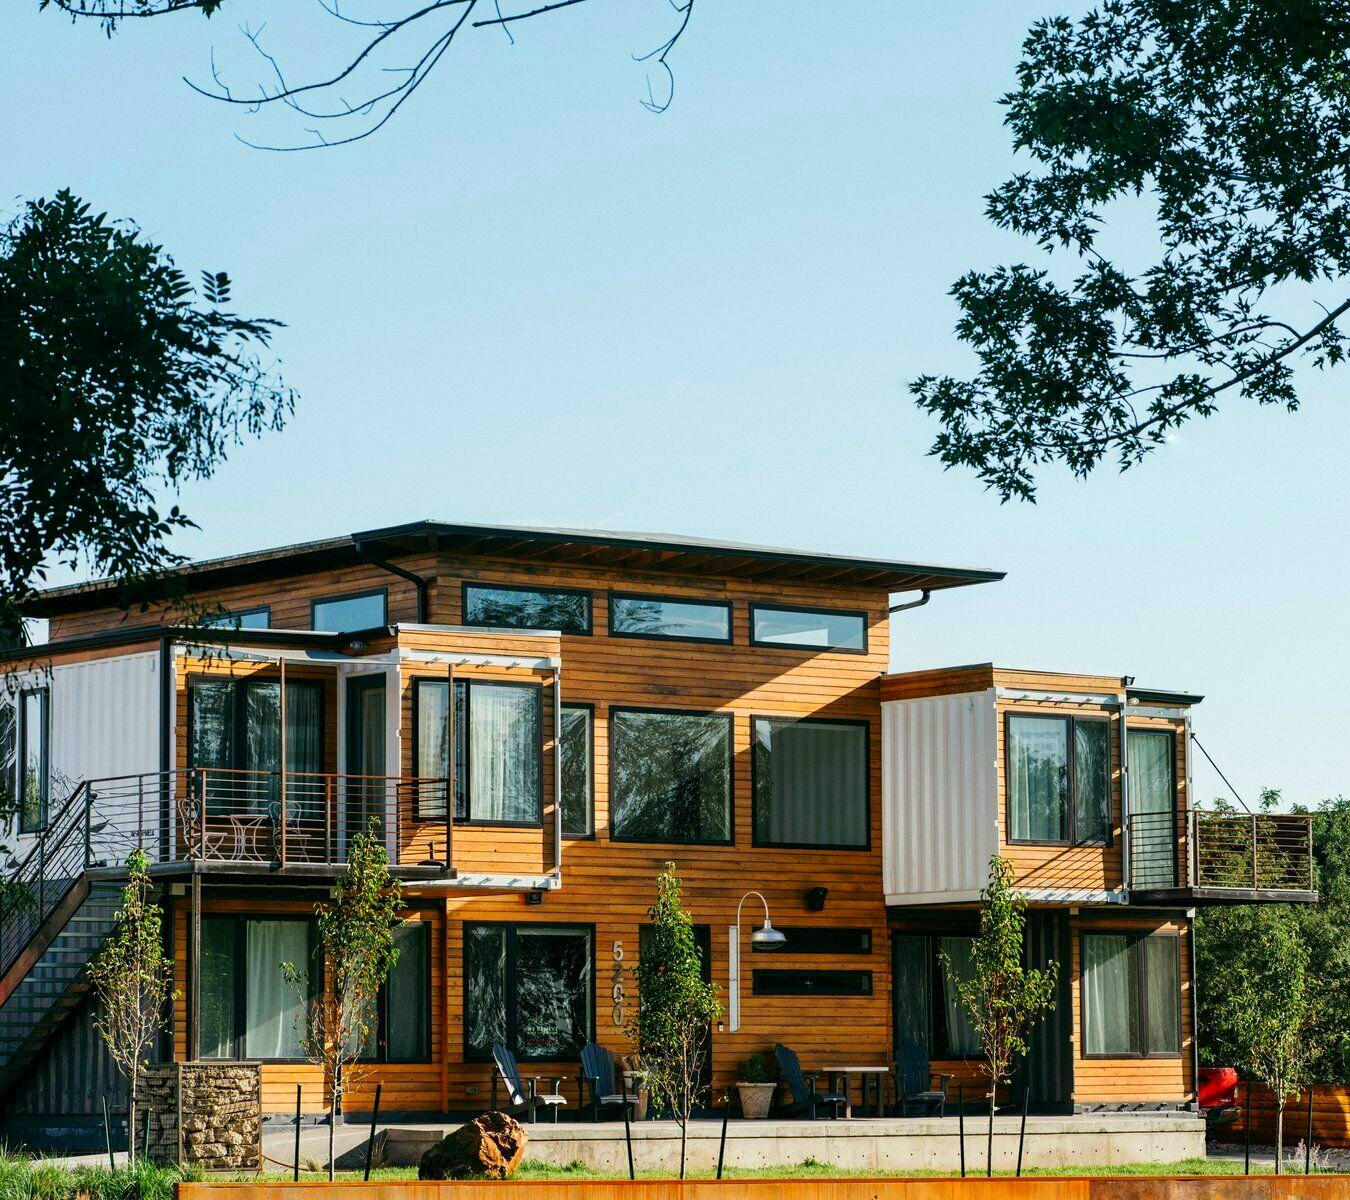 Shipping Container Homes Buildings Beautiful 3000 Sqft 5 Bedroom Shipping Containers Home Denver Colorado